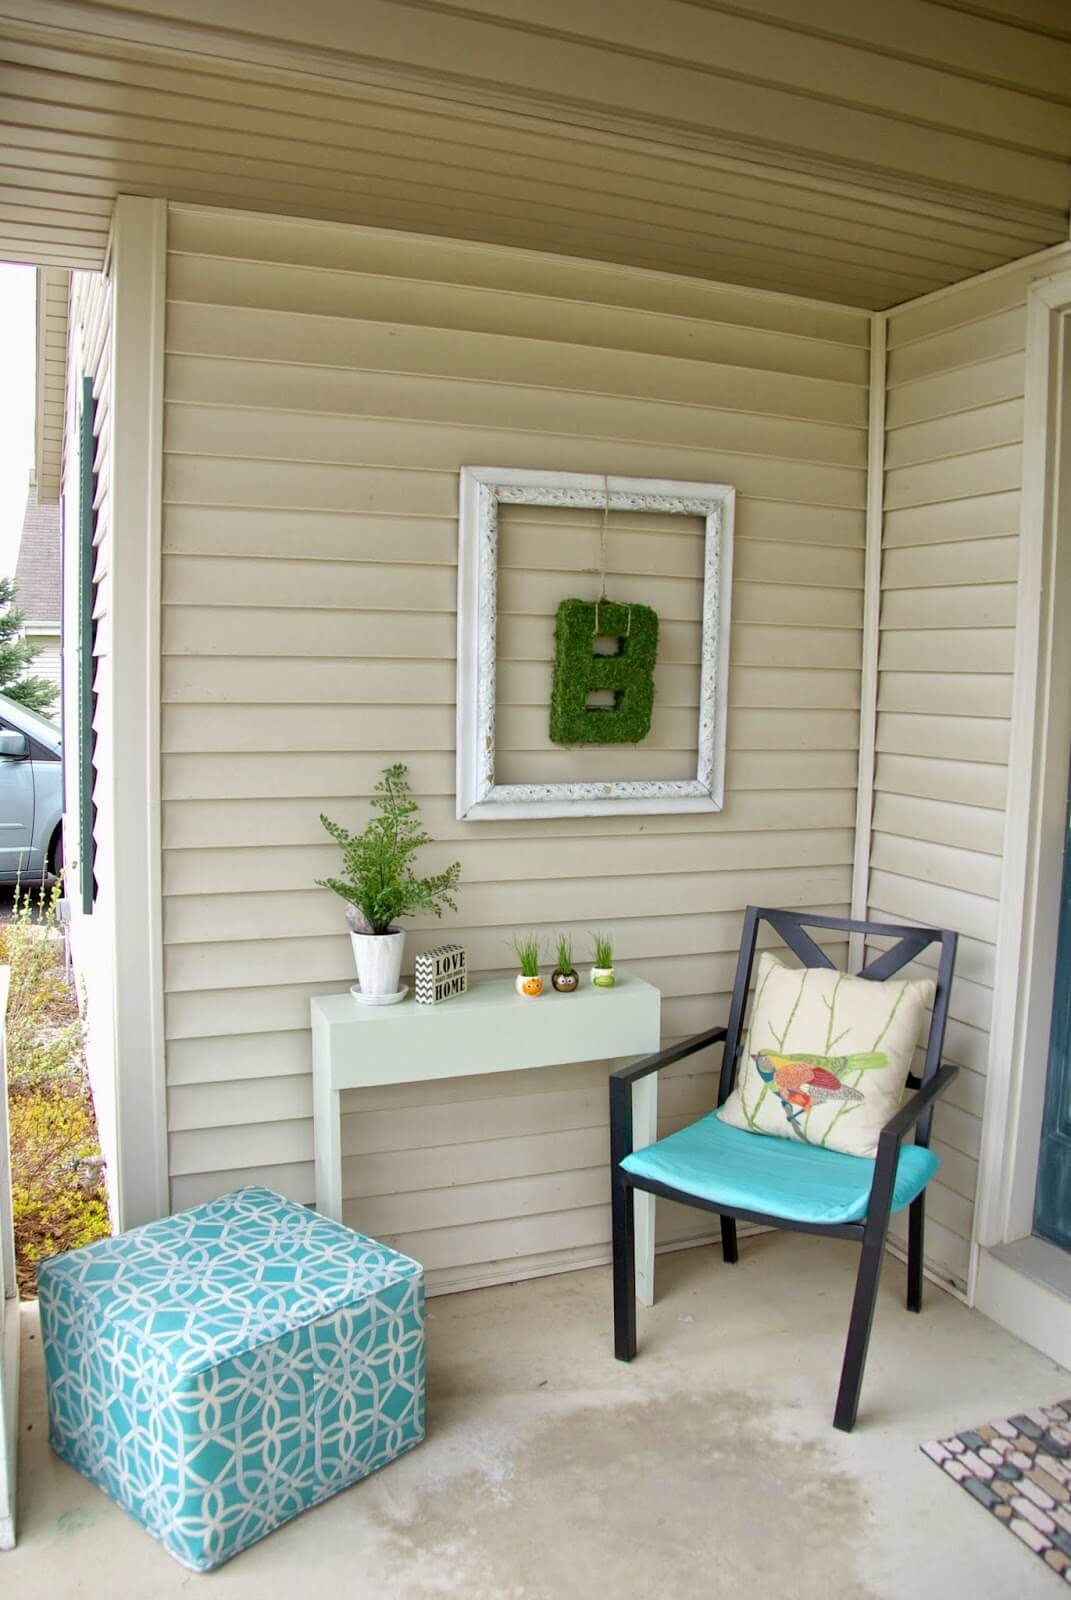 34 Best Porch Wall Decor Ideas and Designs for 2020 on Backyard Wall Decor Ideas id=60771